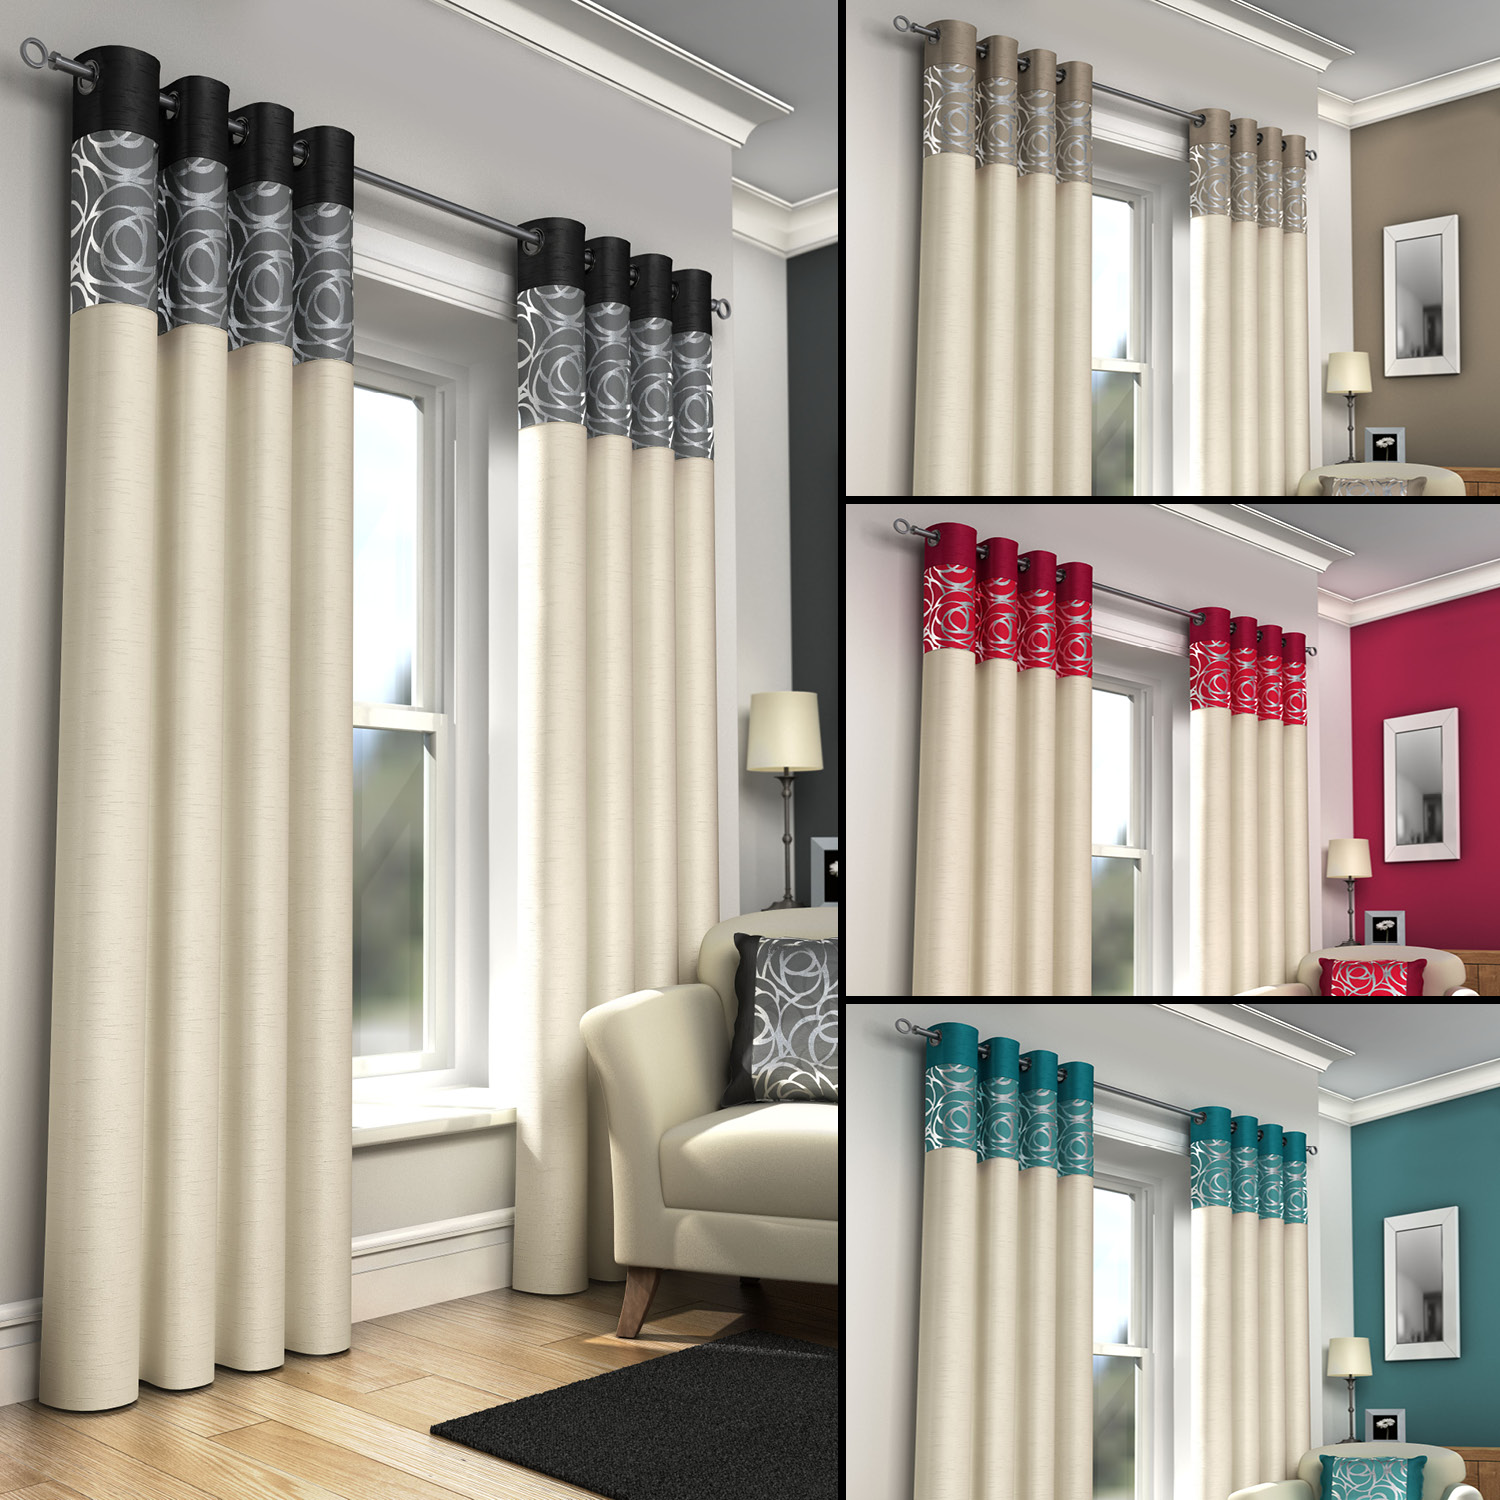 delivery ready curtains products curtain made uk balmoral thermal fabrics interlined natural terrys